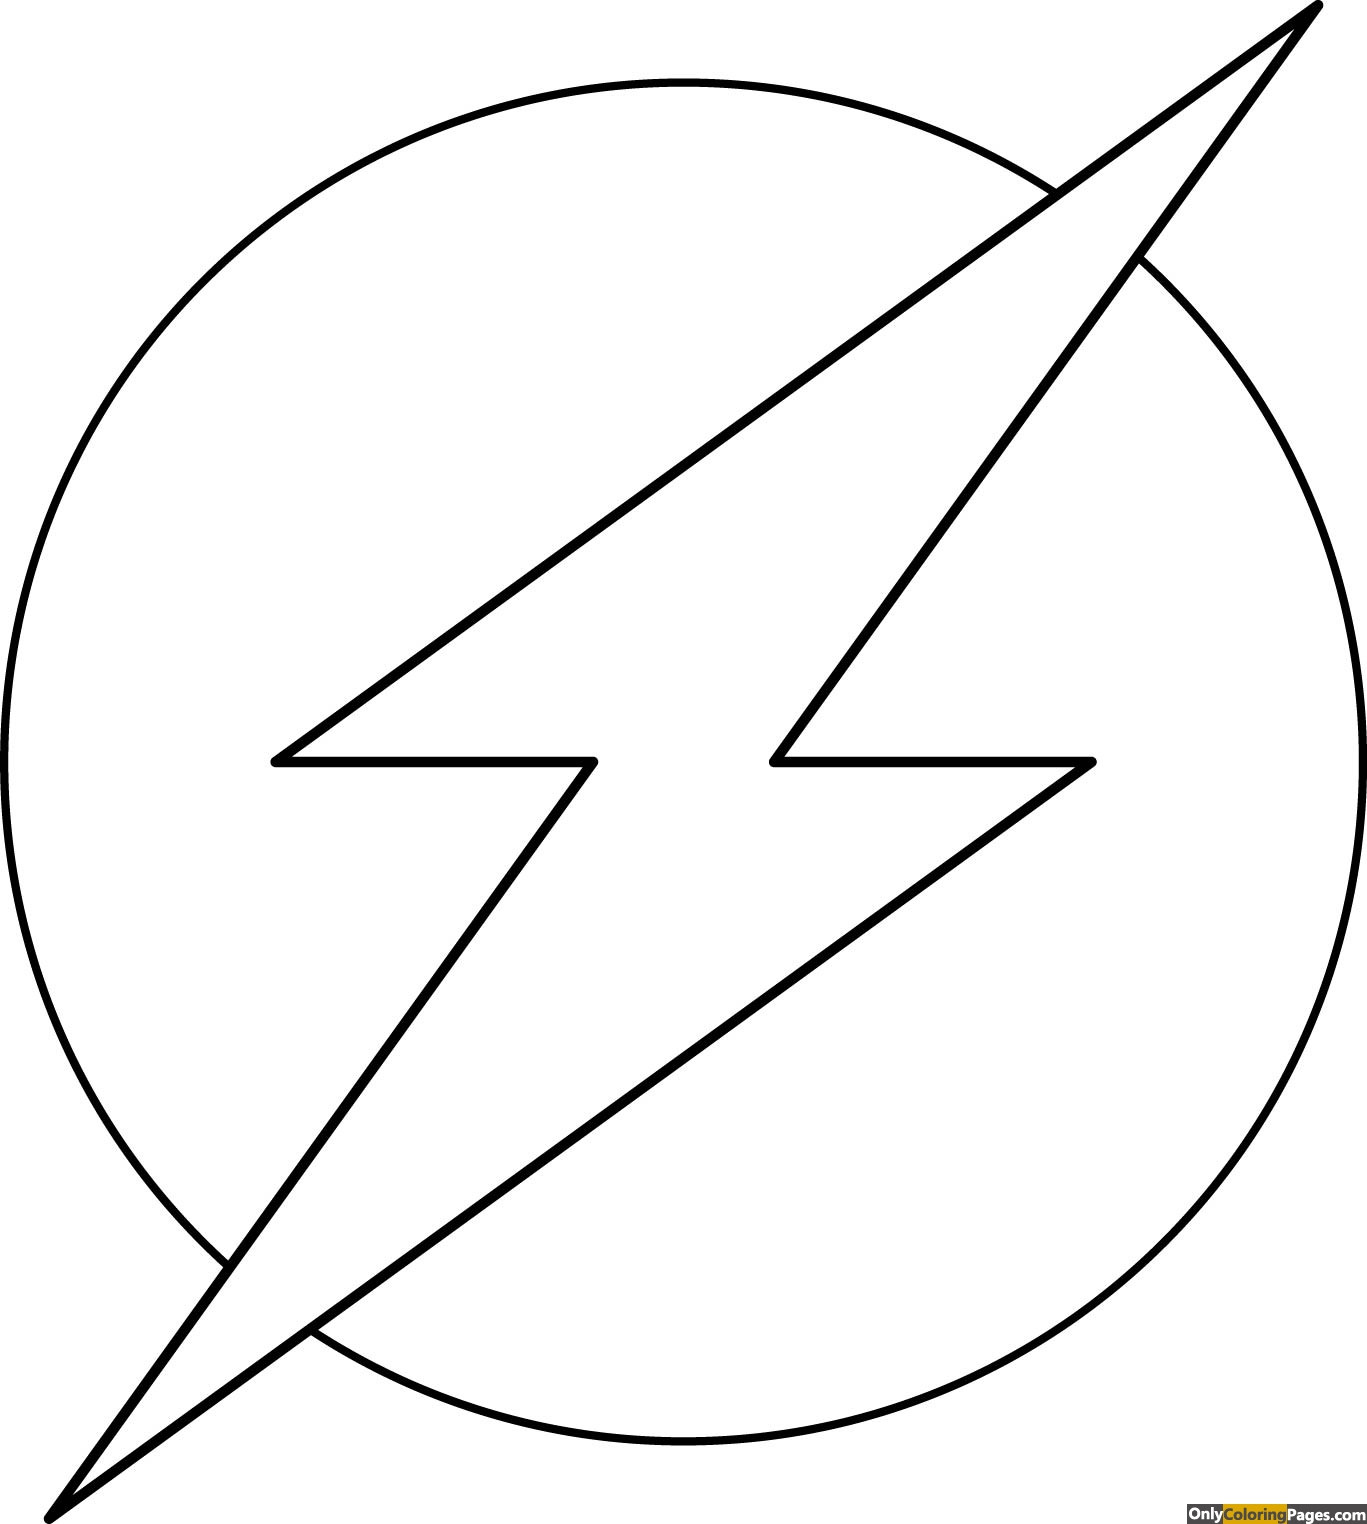 Flash Symbol Coloring Pages  Flash Symbol Coloring to Pin on Pinterest PinsDaddy